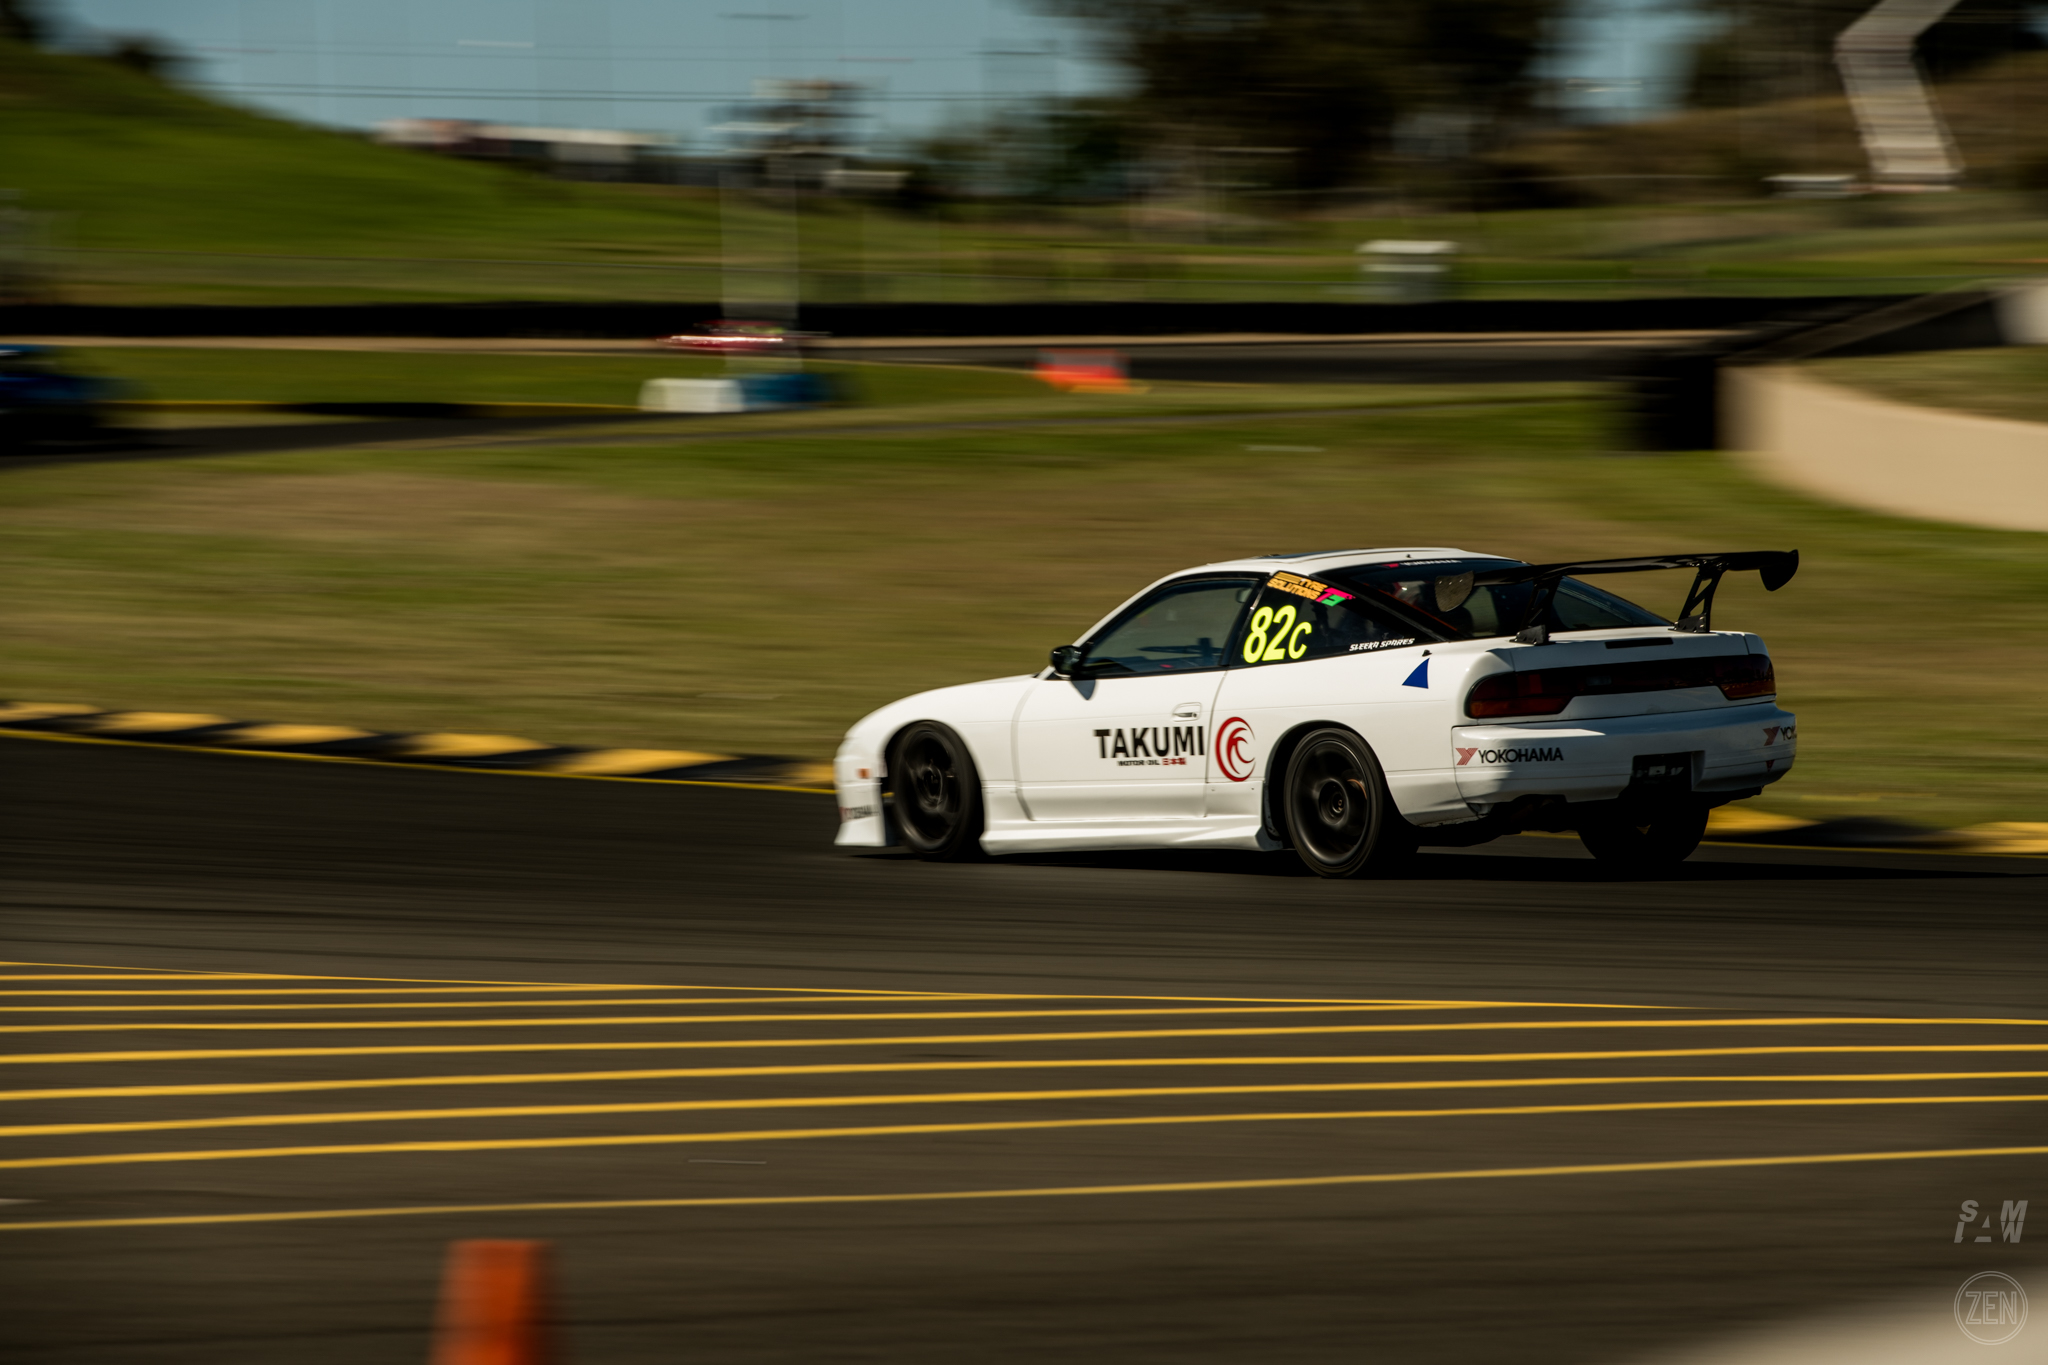 2019-10-18 - WTAC Day 01 033